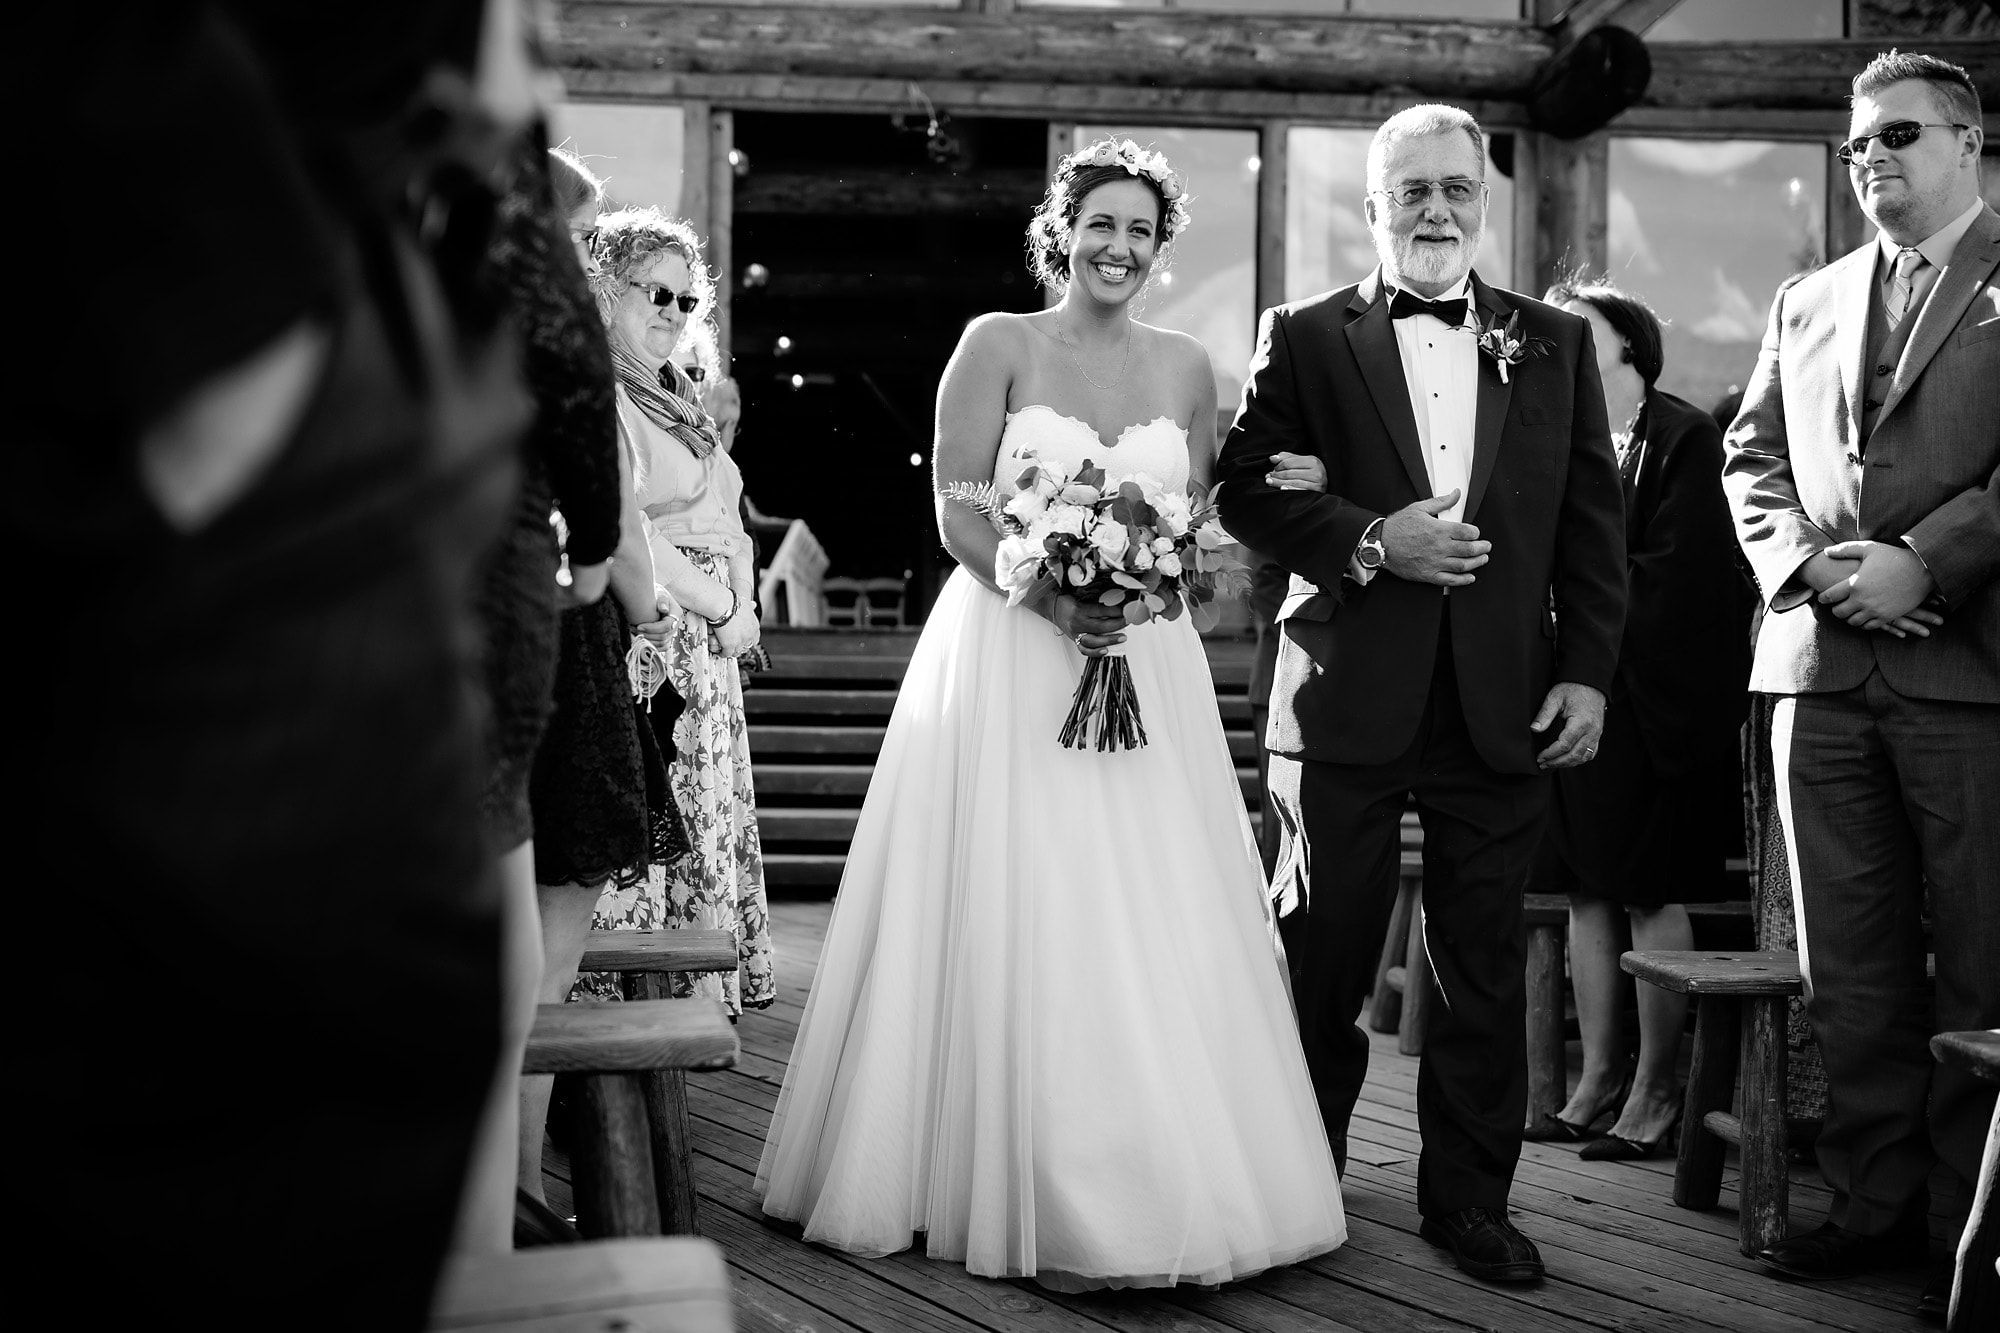 Becky and her father walk down the aisle at Piney River Ranch outside of Vail, Colorado.